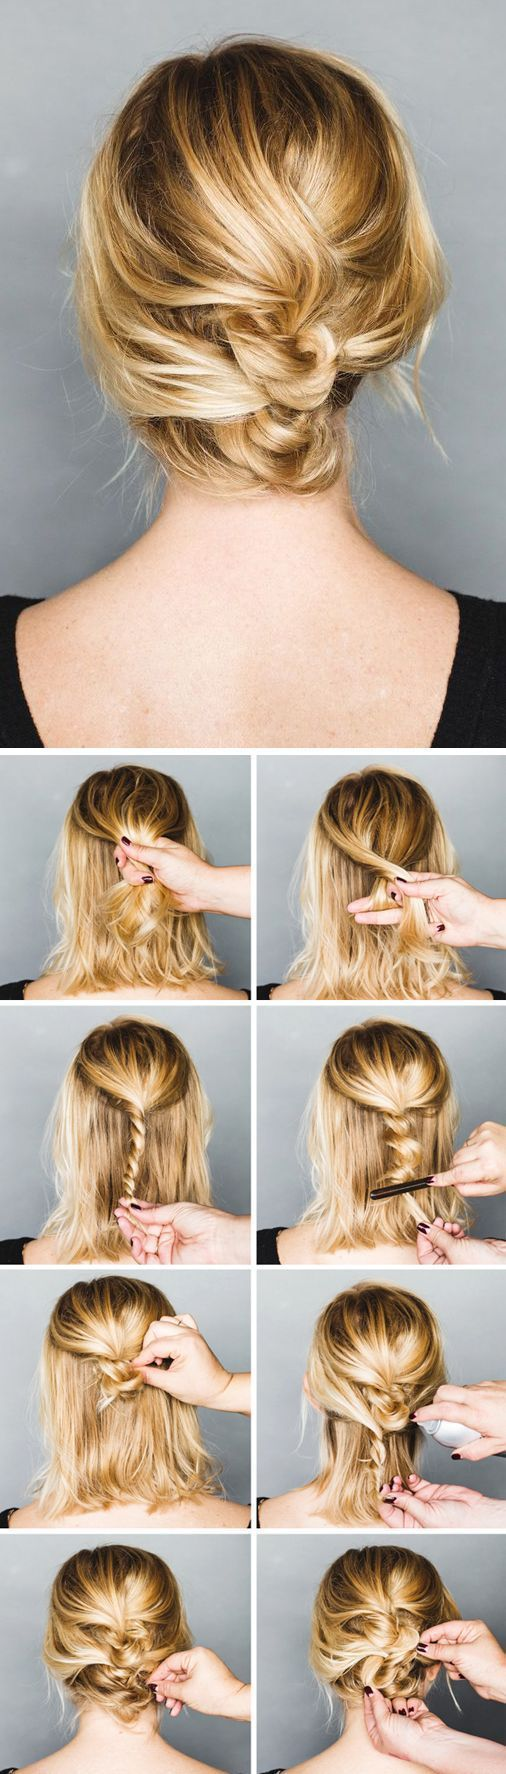 25 Step By Step Tutorial For Beautiful Hair Updos ❤ - Page 5 of 5 - Trend To Wear